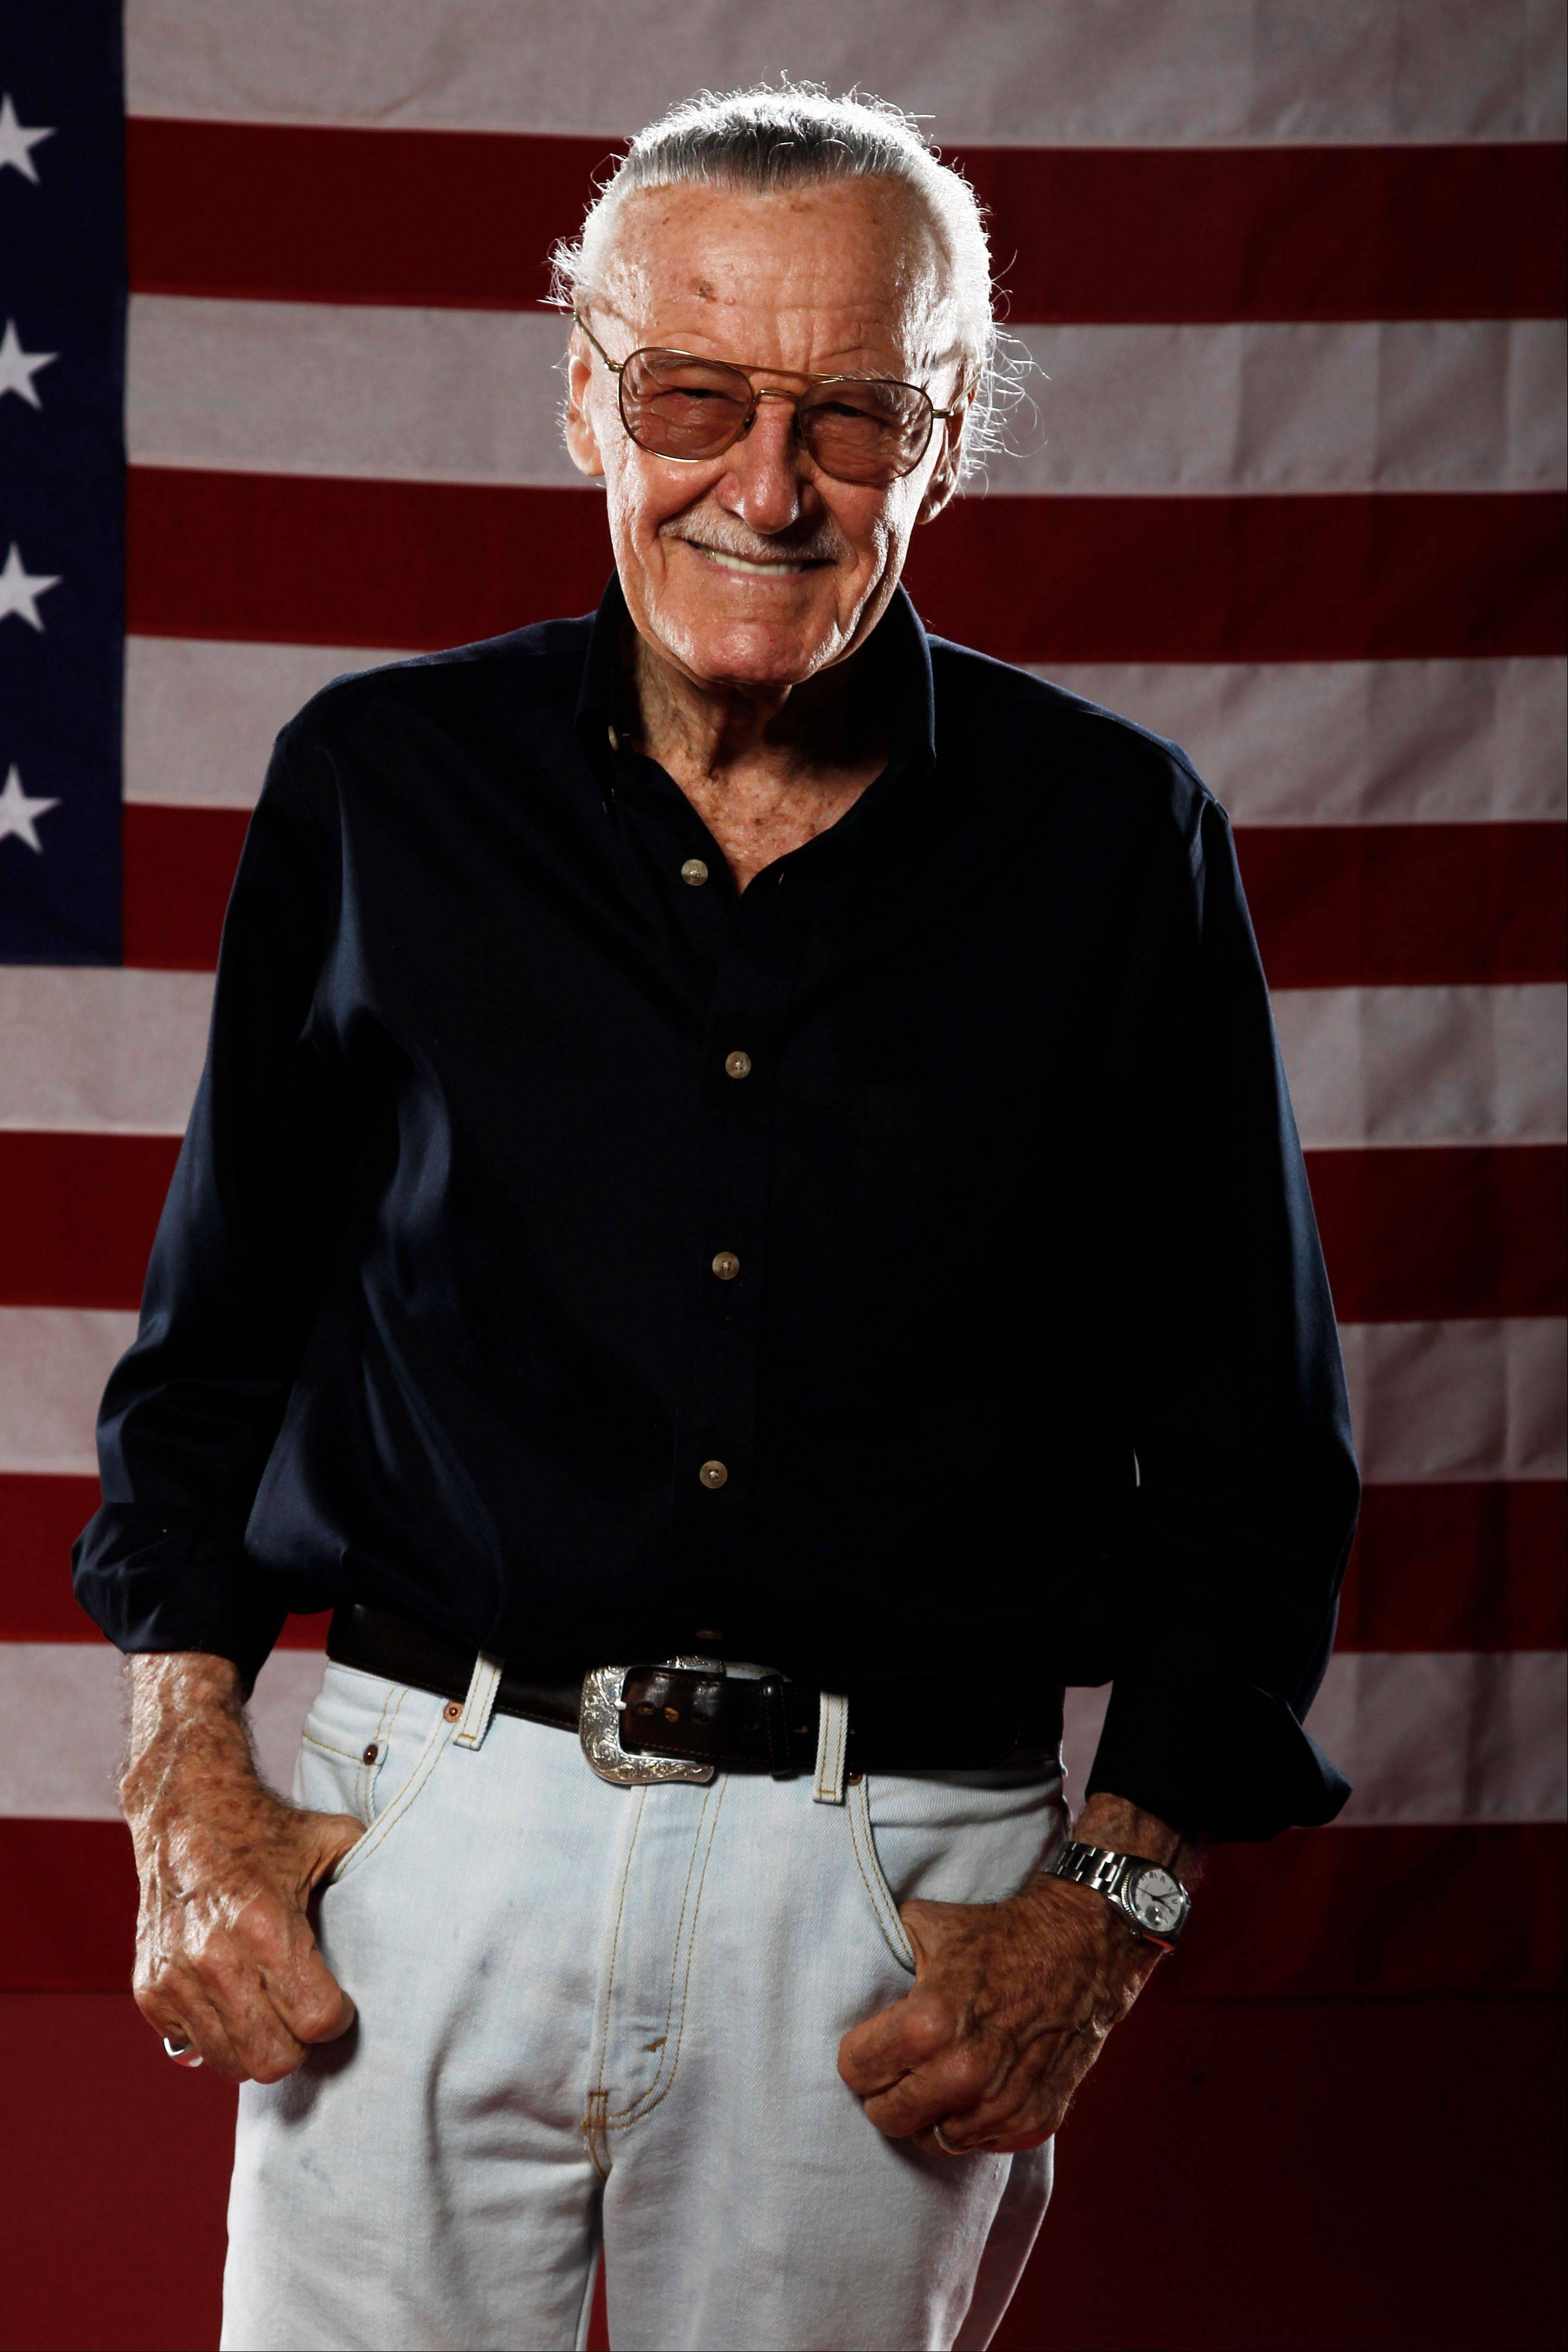 Iconic comic book creator Stan Lee will appear at Wizard World Chicago Comic Con in Rosemont this weekend.